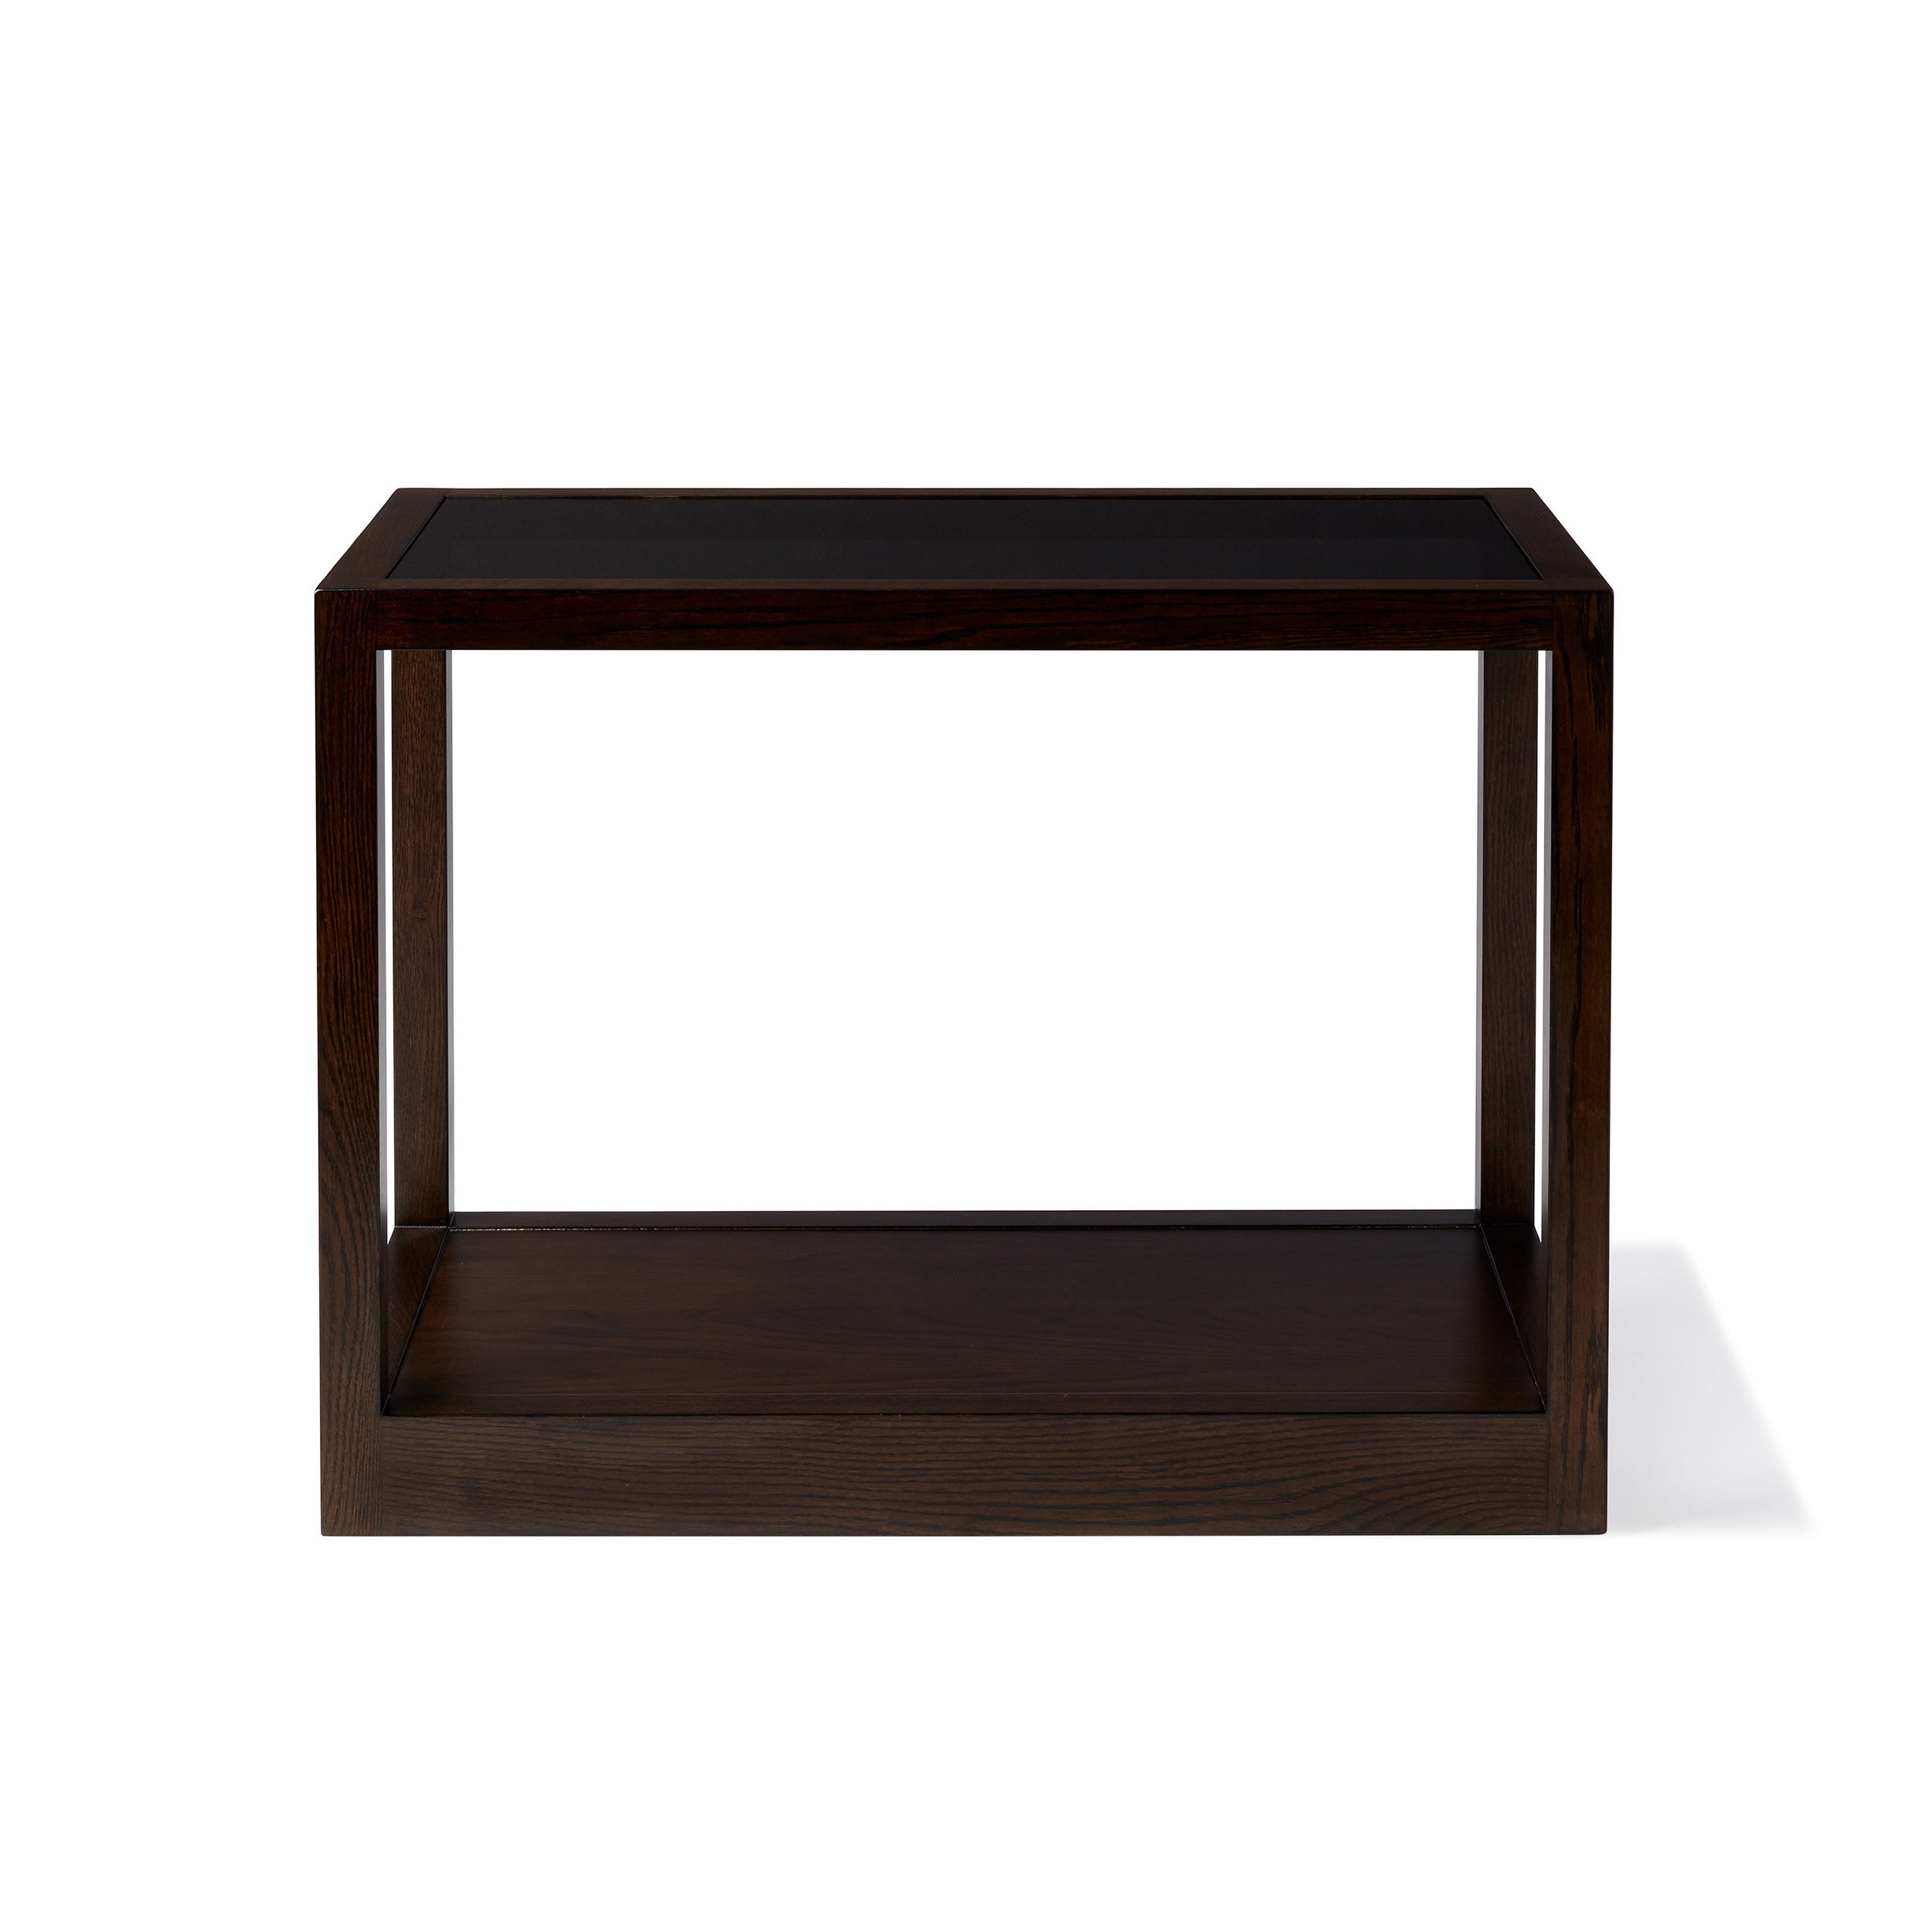 Side Table Klein.Calvin Klein Gramercy Sepia Wood Glass Top Side Table